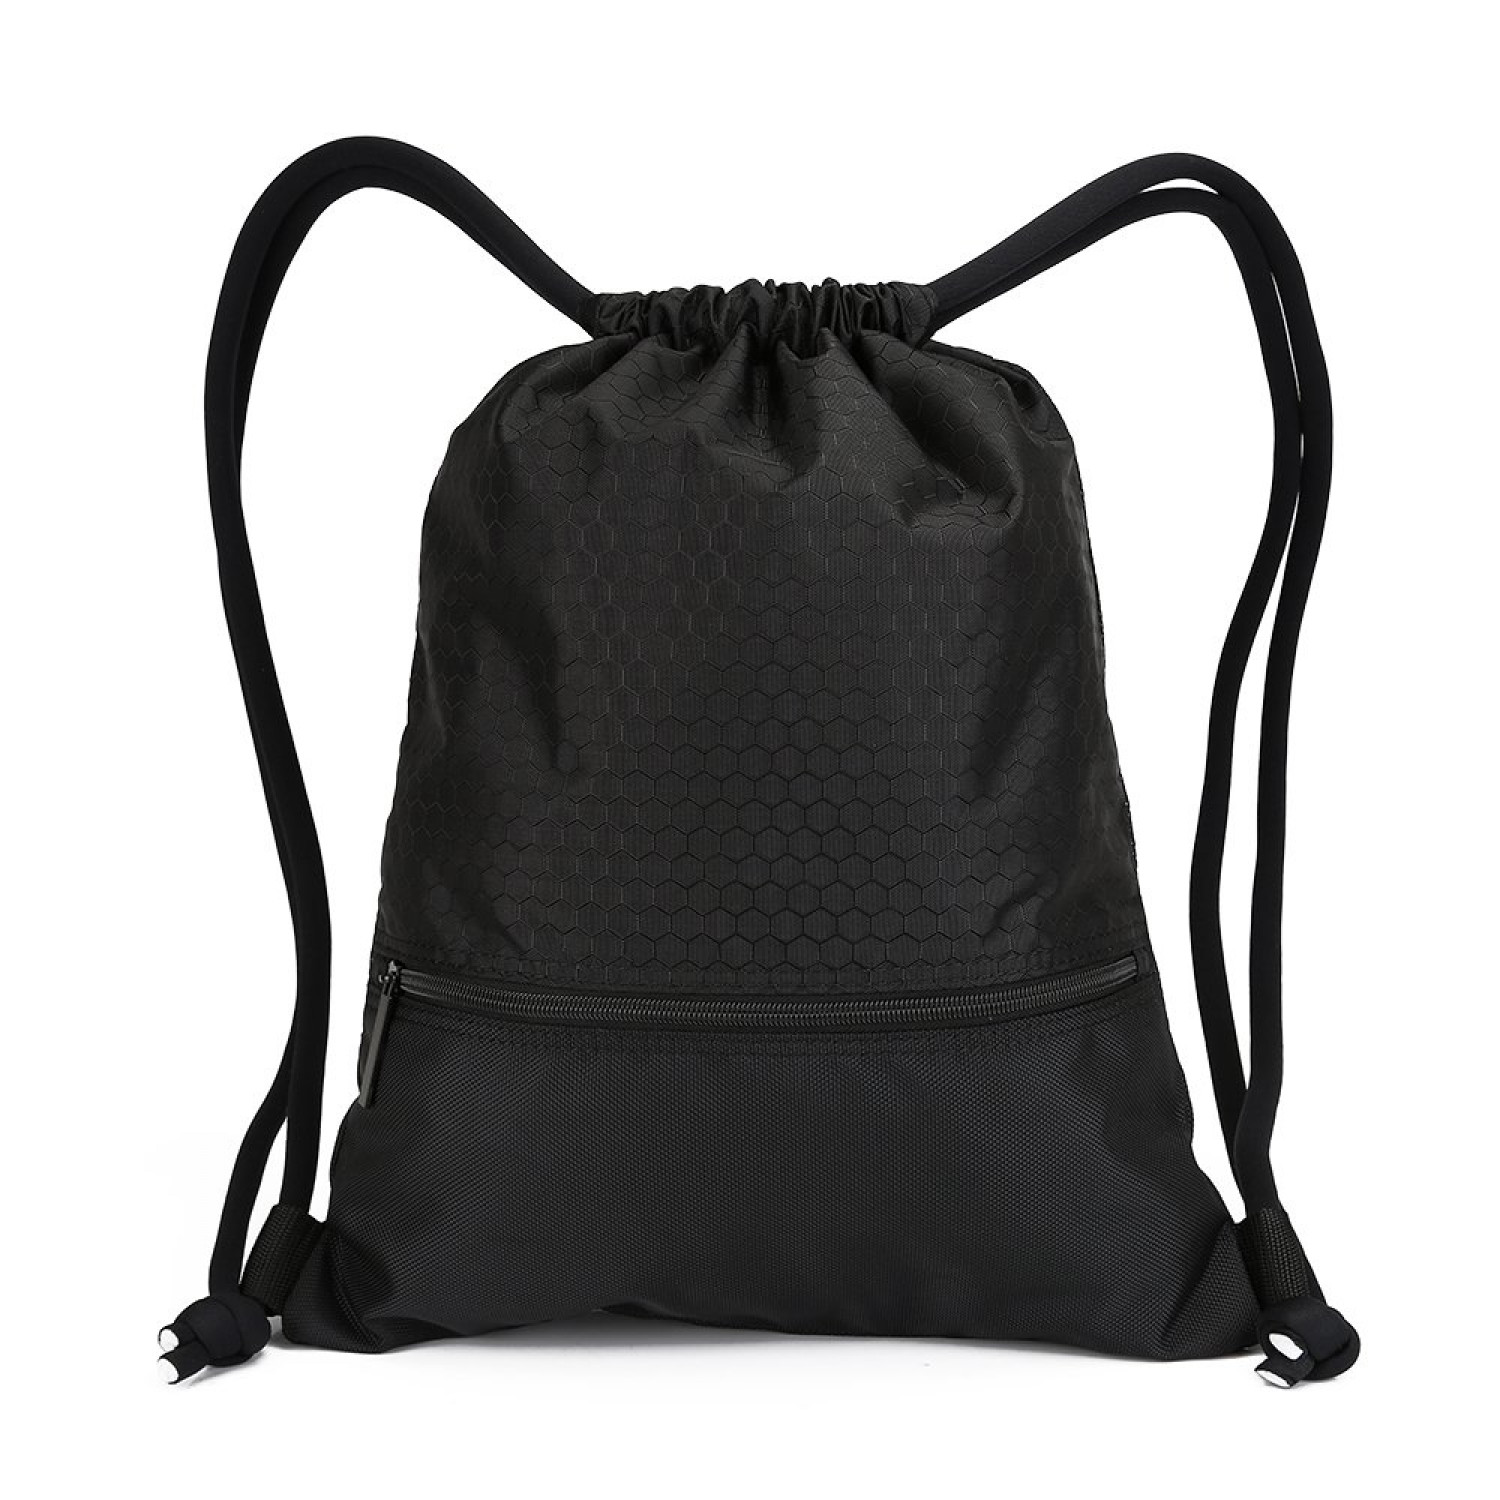 Buy Promotional Drawstring Backpacks to Recognize Brand Infographic